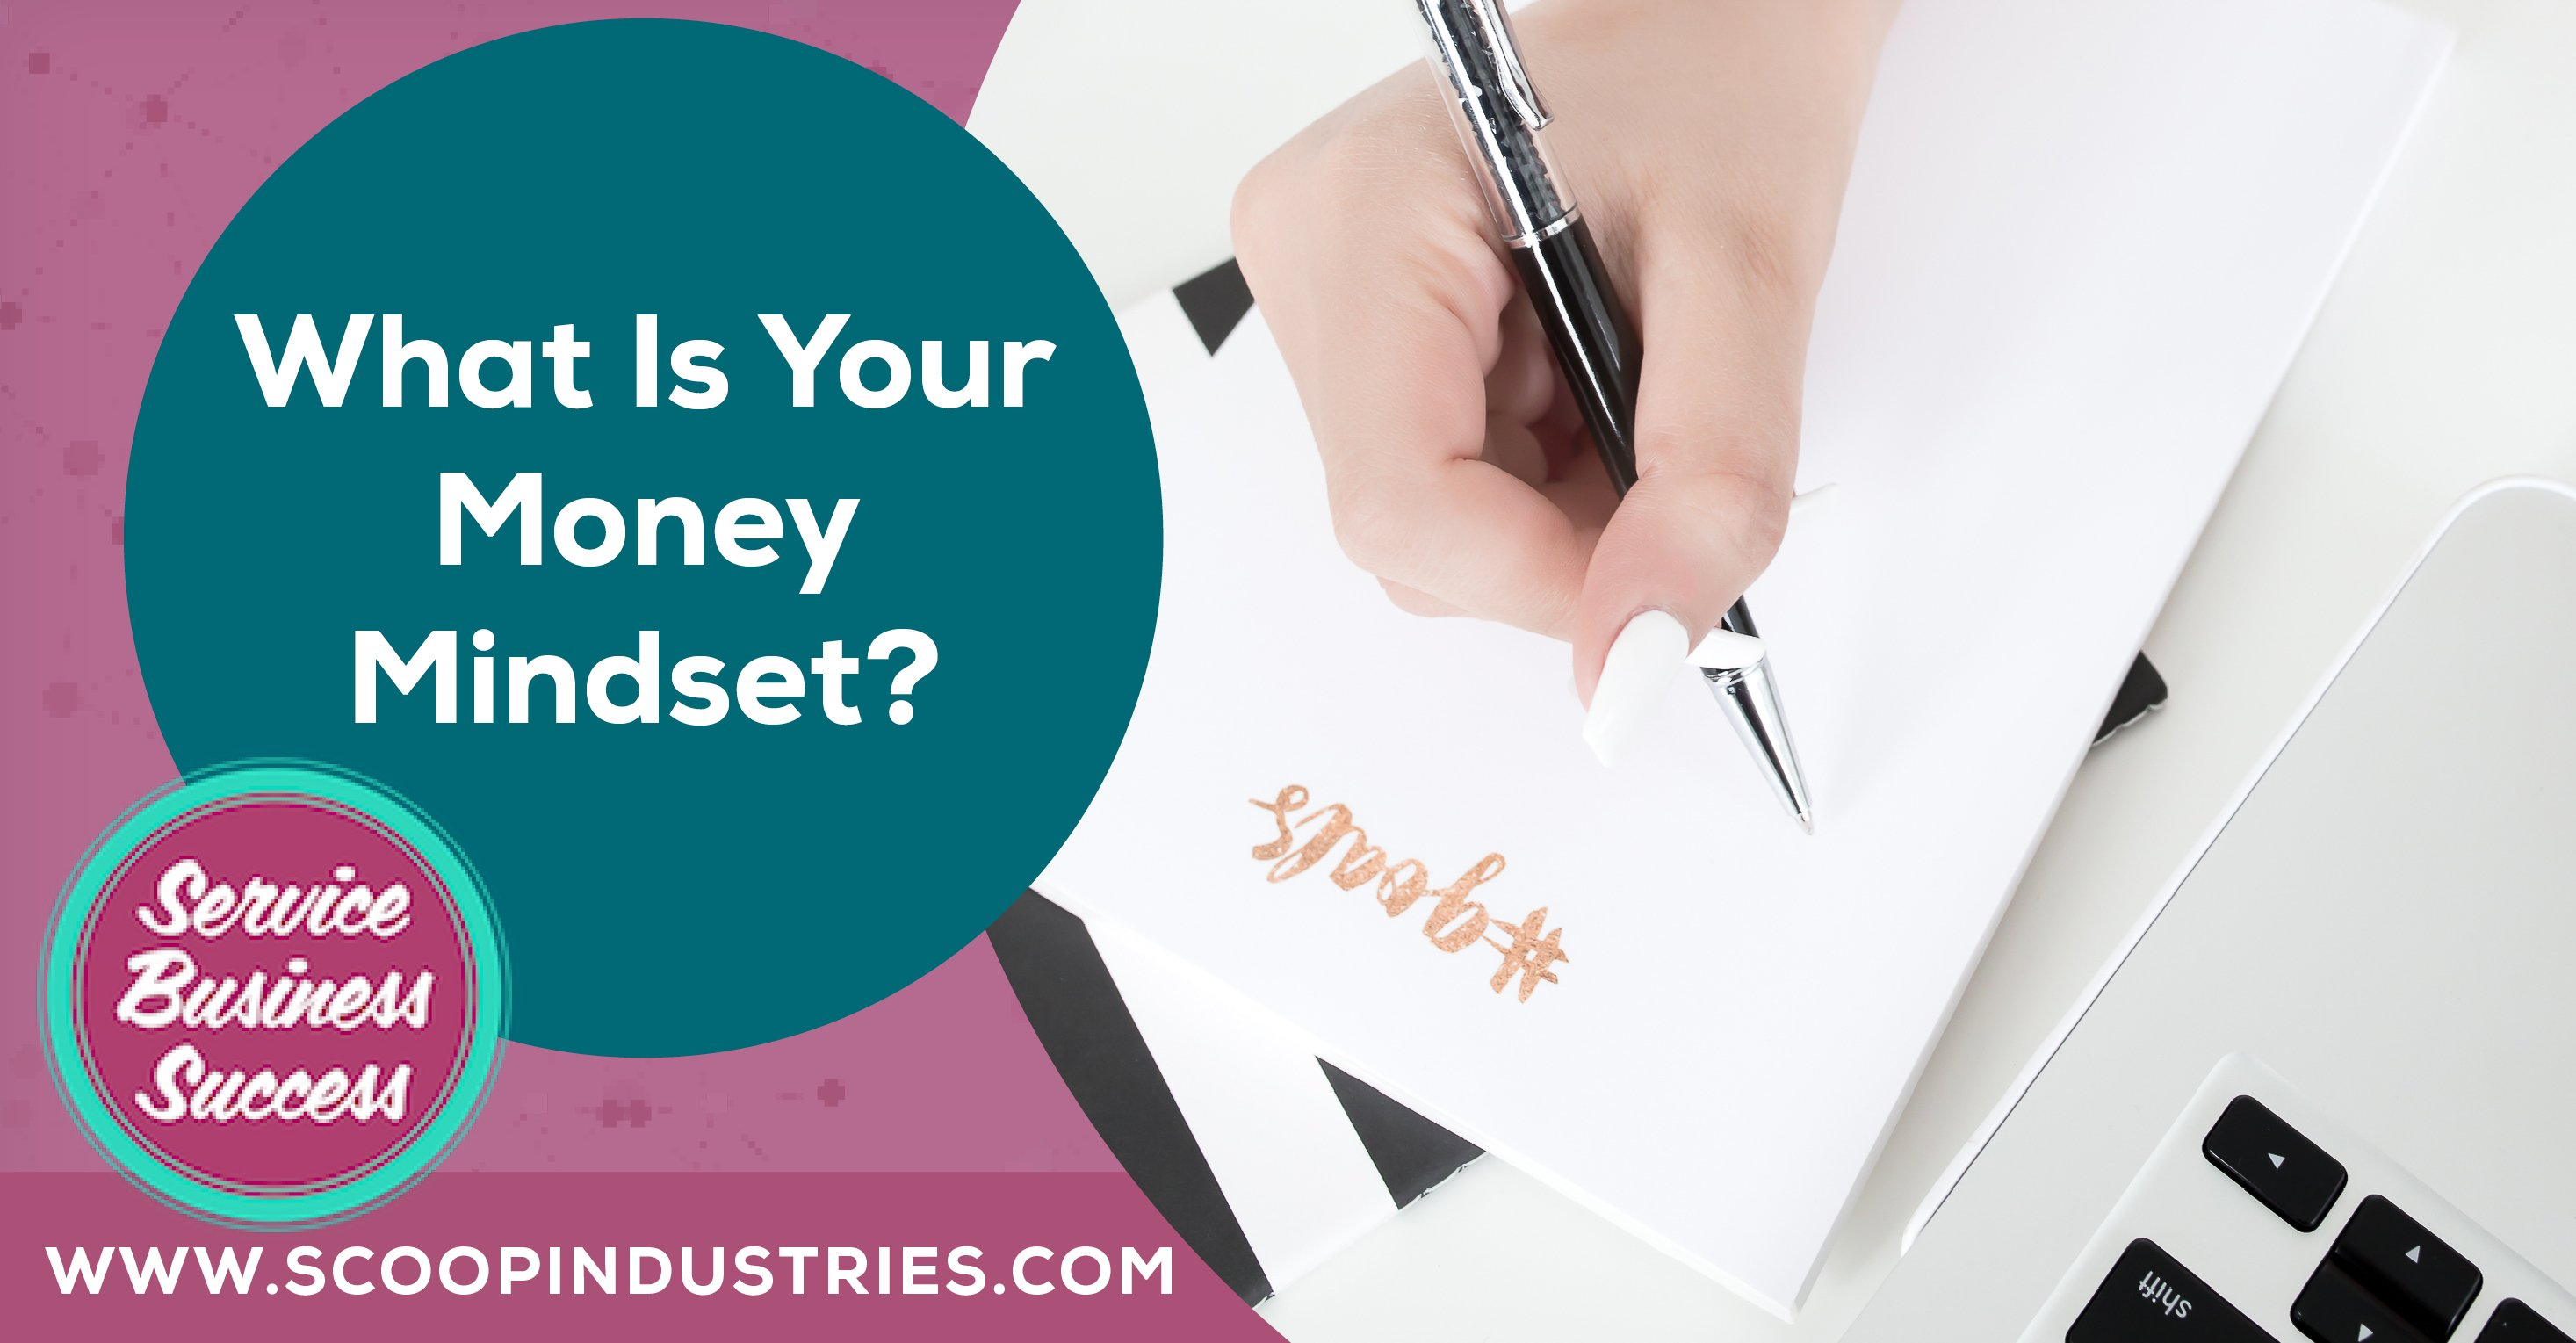 Episode 59: What is your Money Mindset?